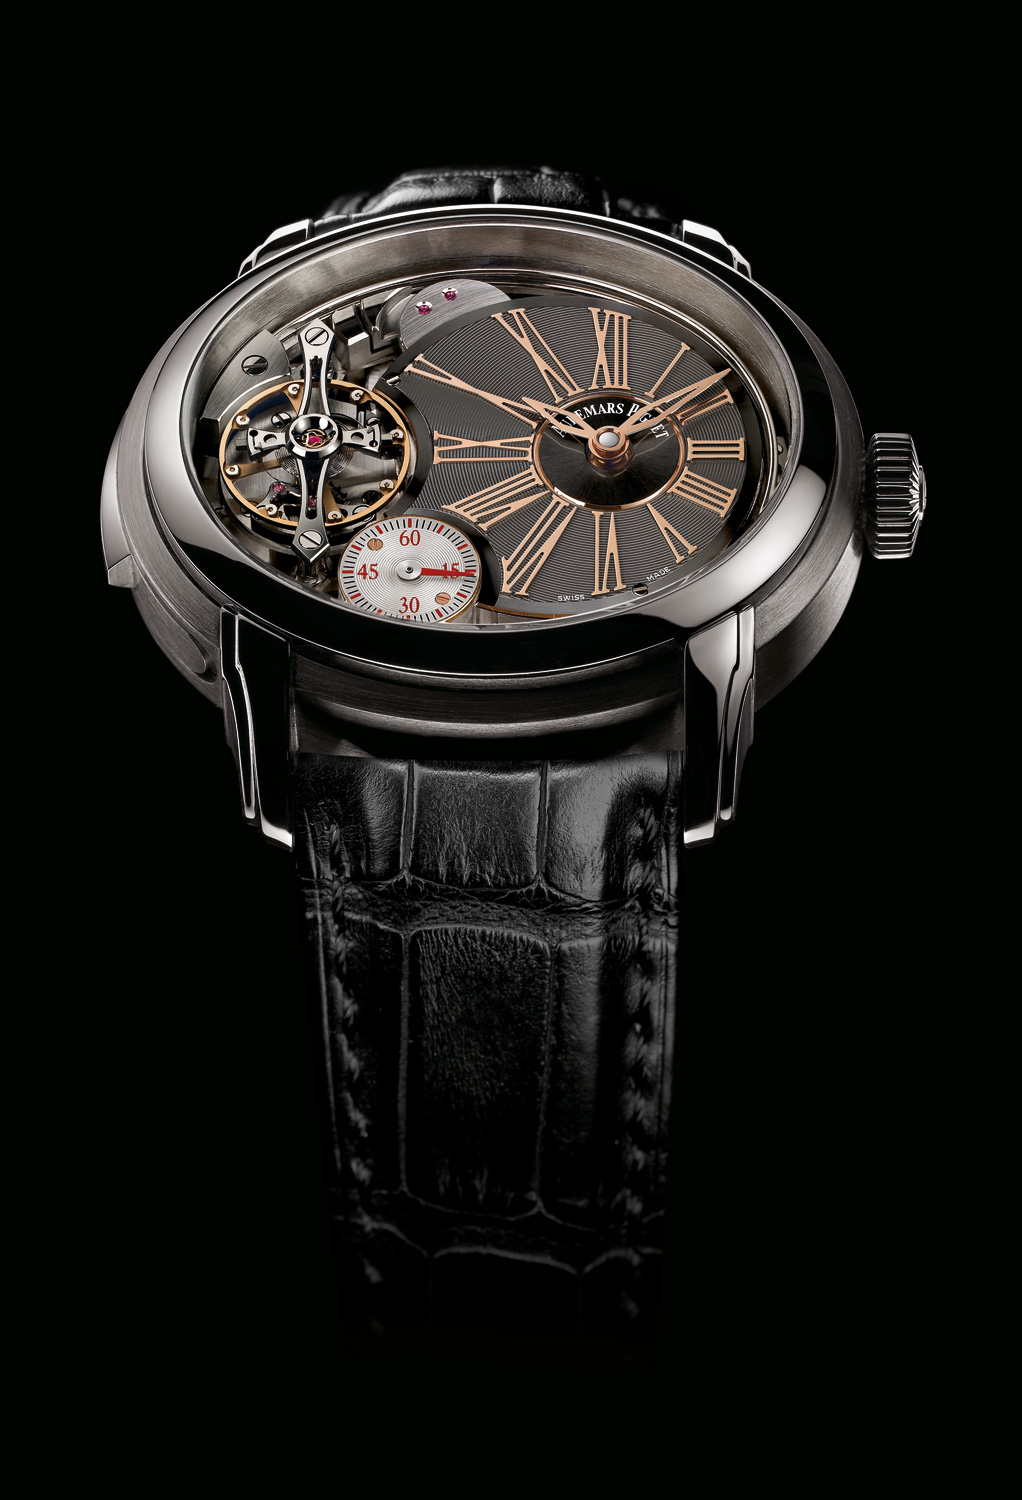 Audemars Piguet - Millenary Hand-Wound Minute Repeater